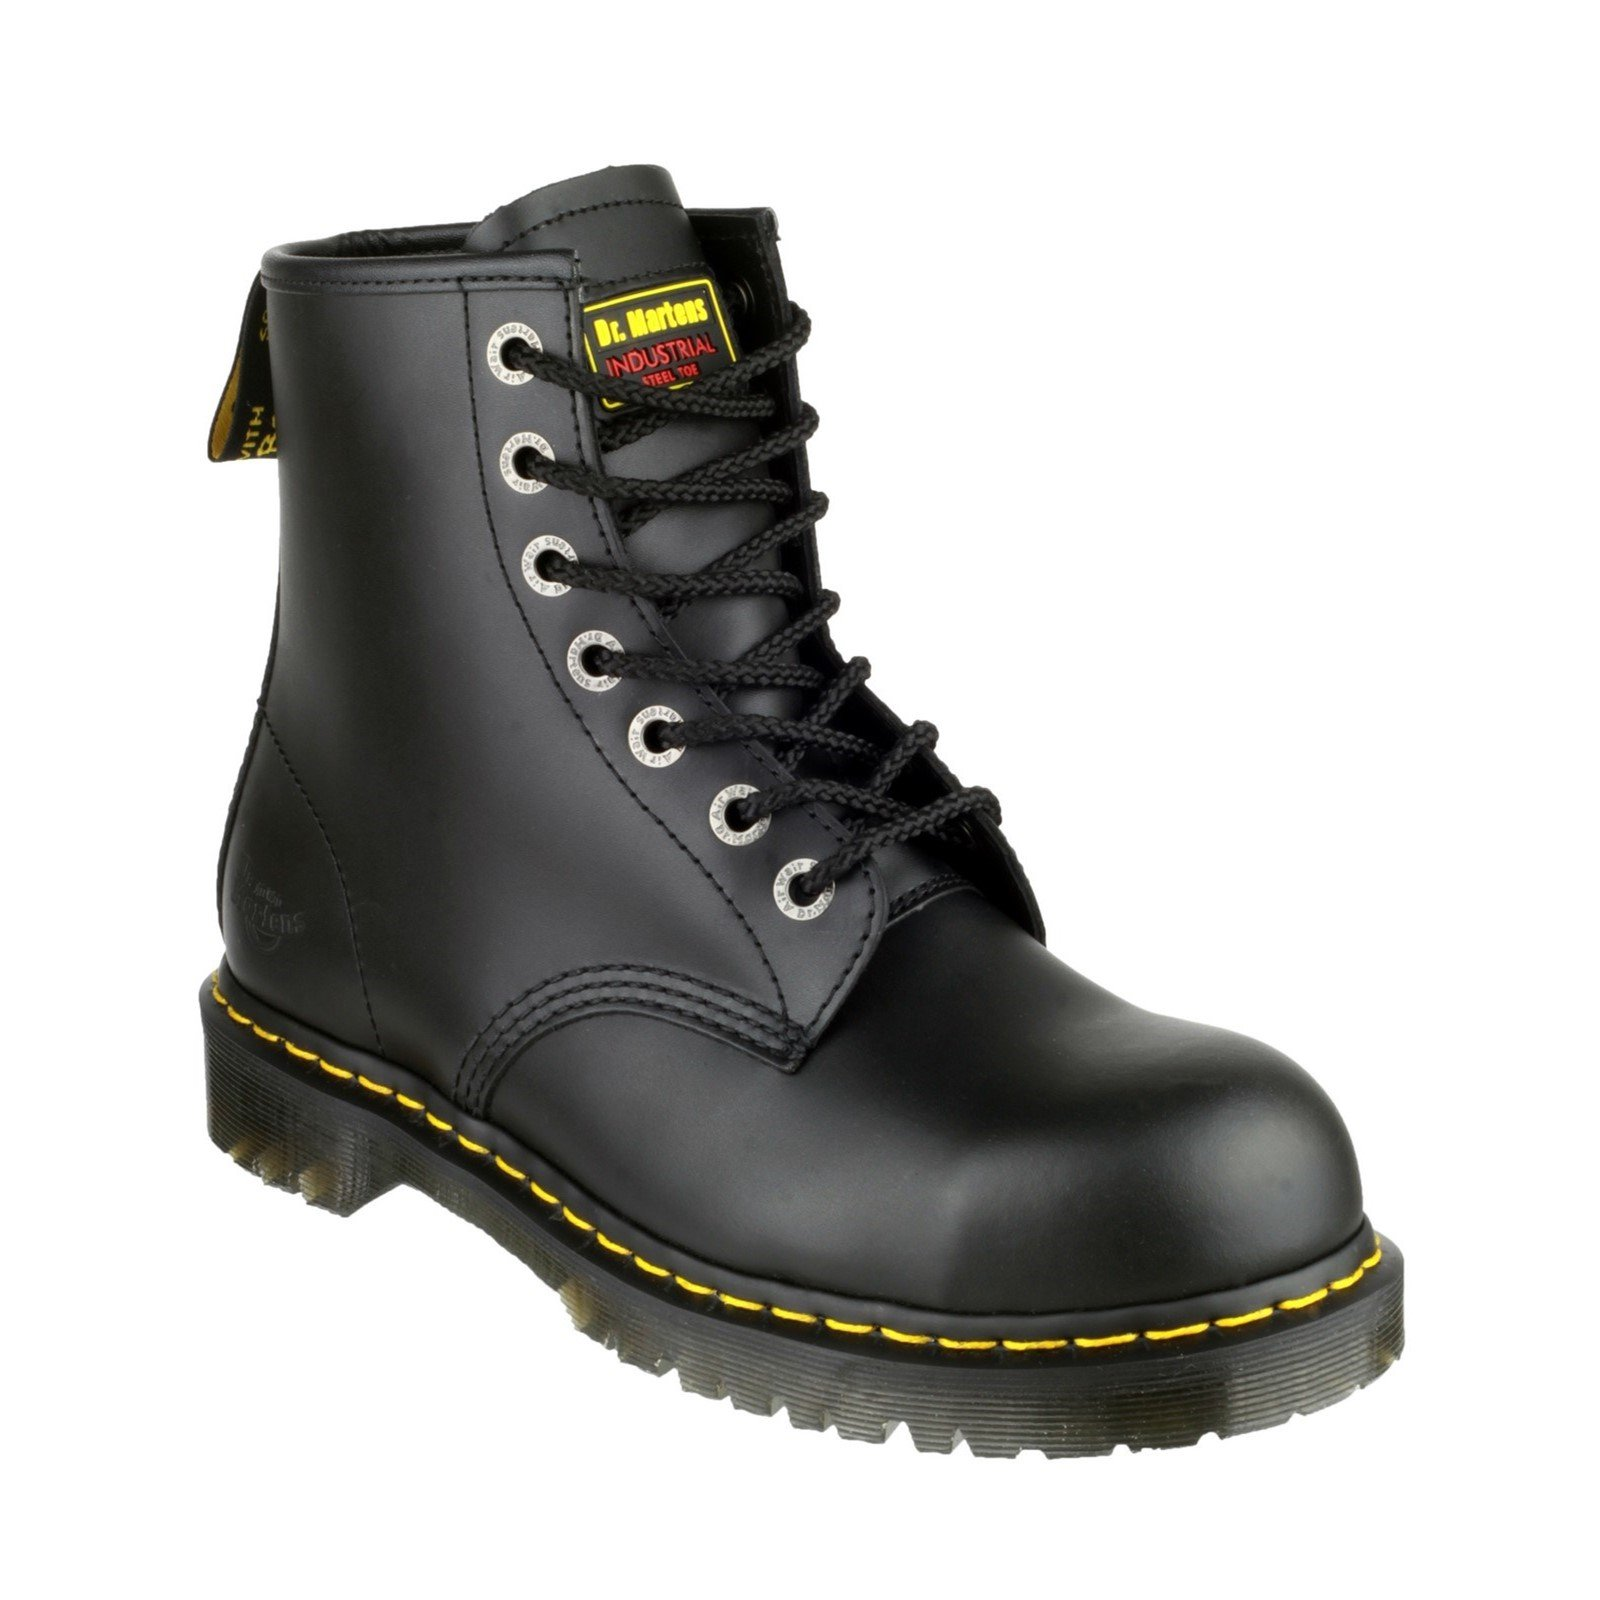 Dr Martens Unisex Icon Lace up Safety Boot Black 19498 - Black 12